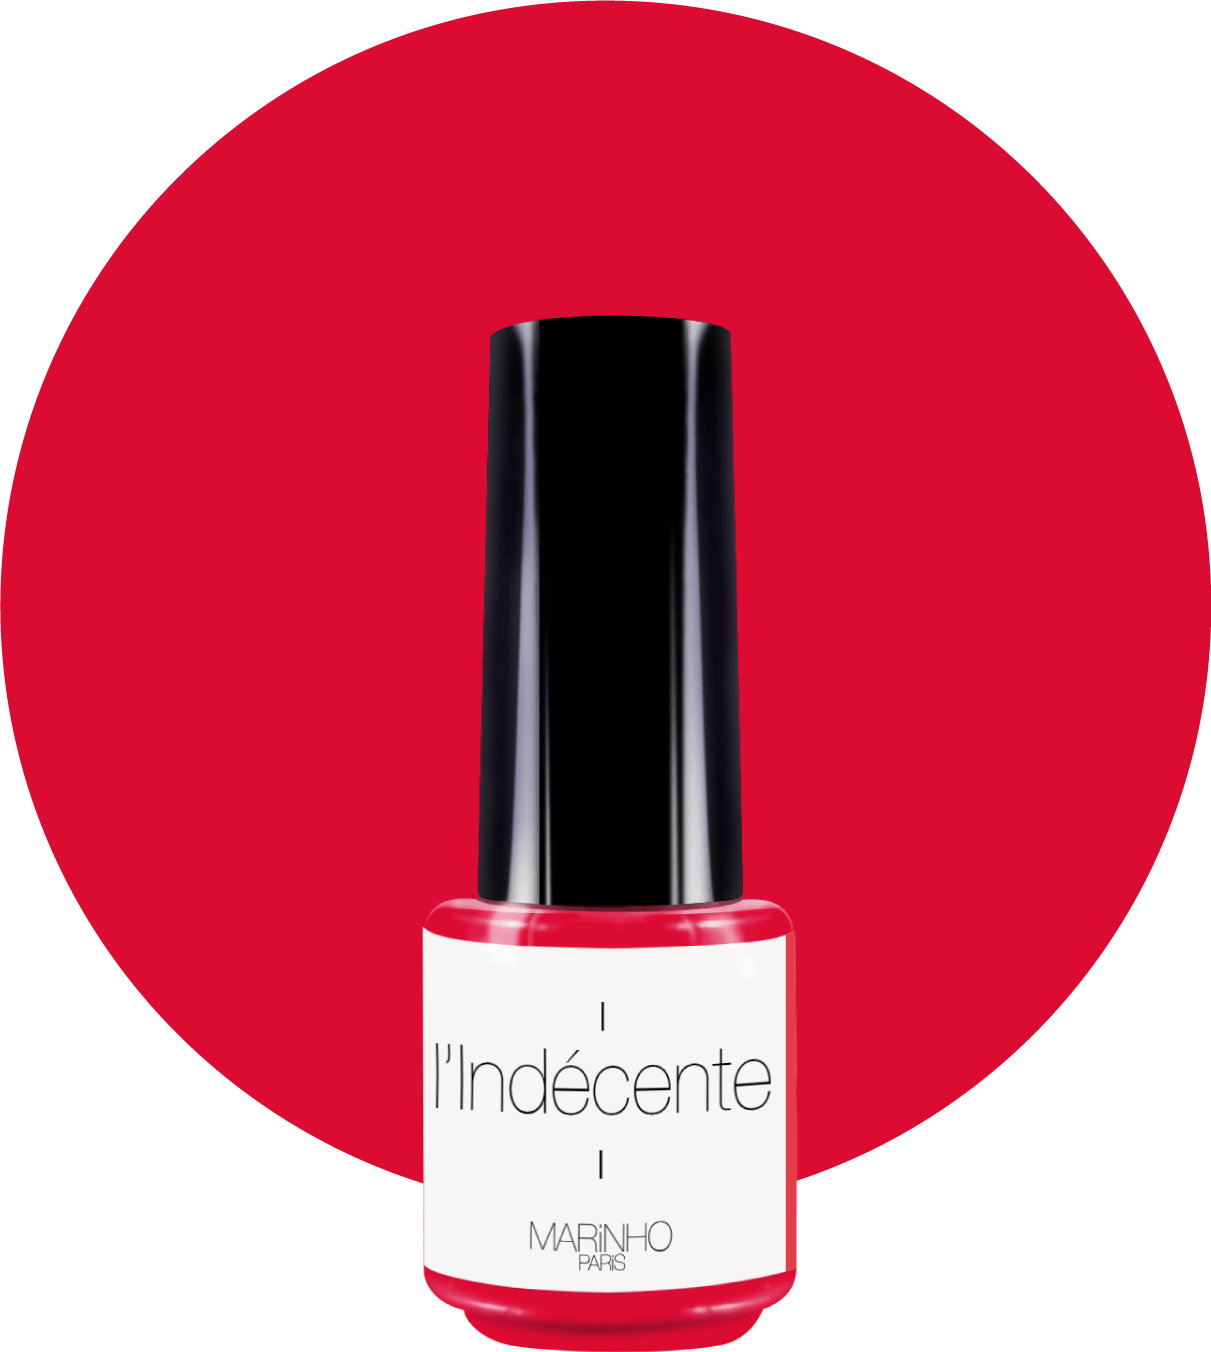 vernis semi-permanent rouge marinho paris sur rond rouge